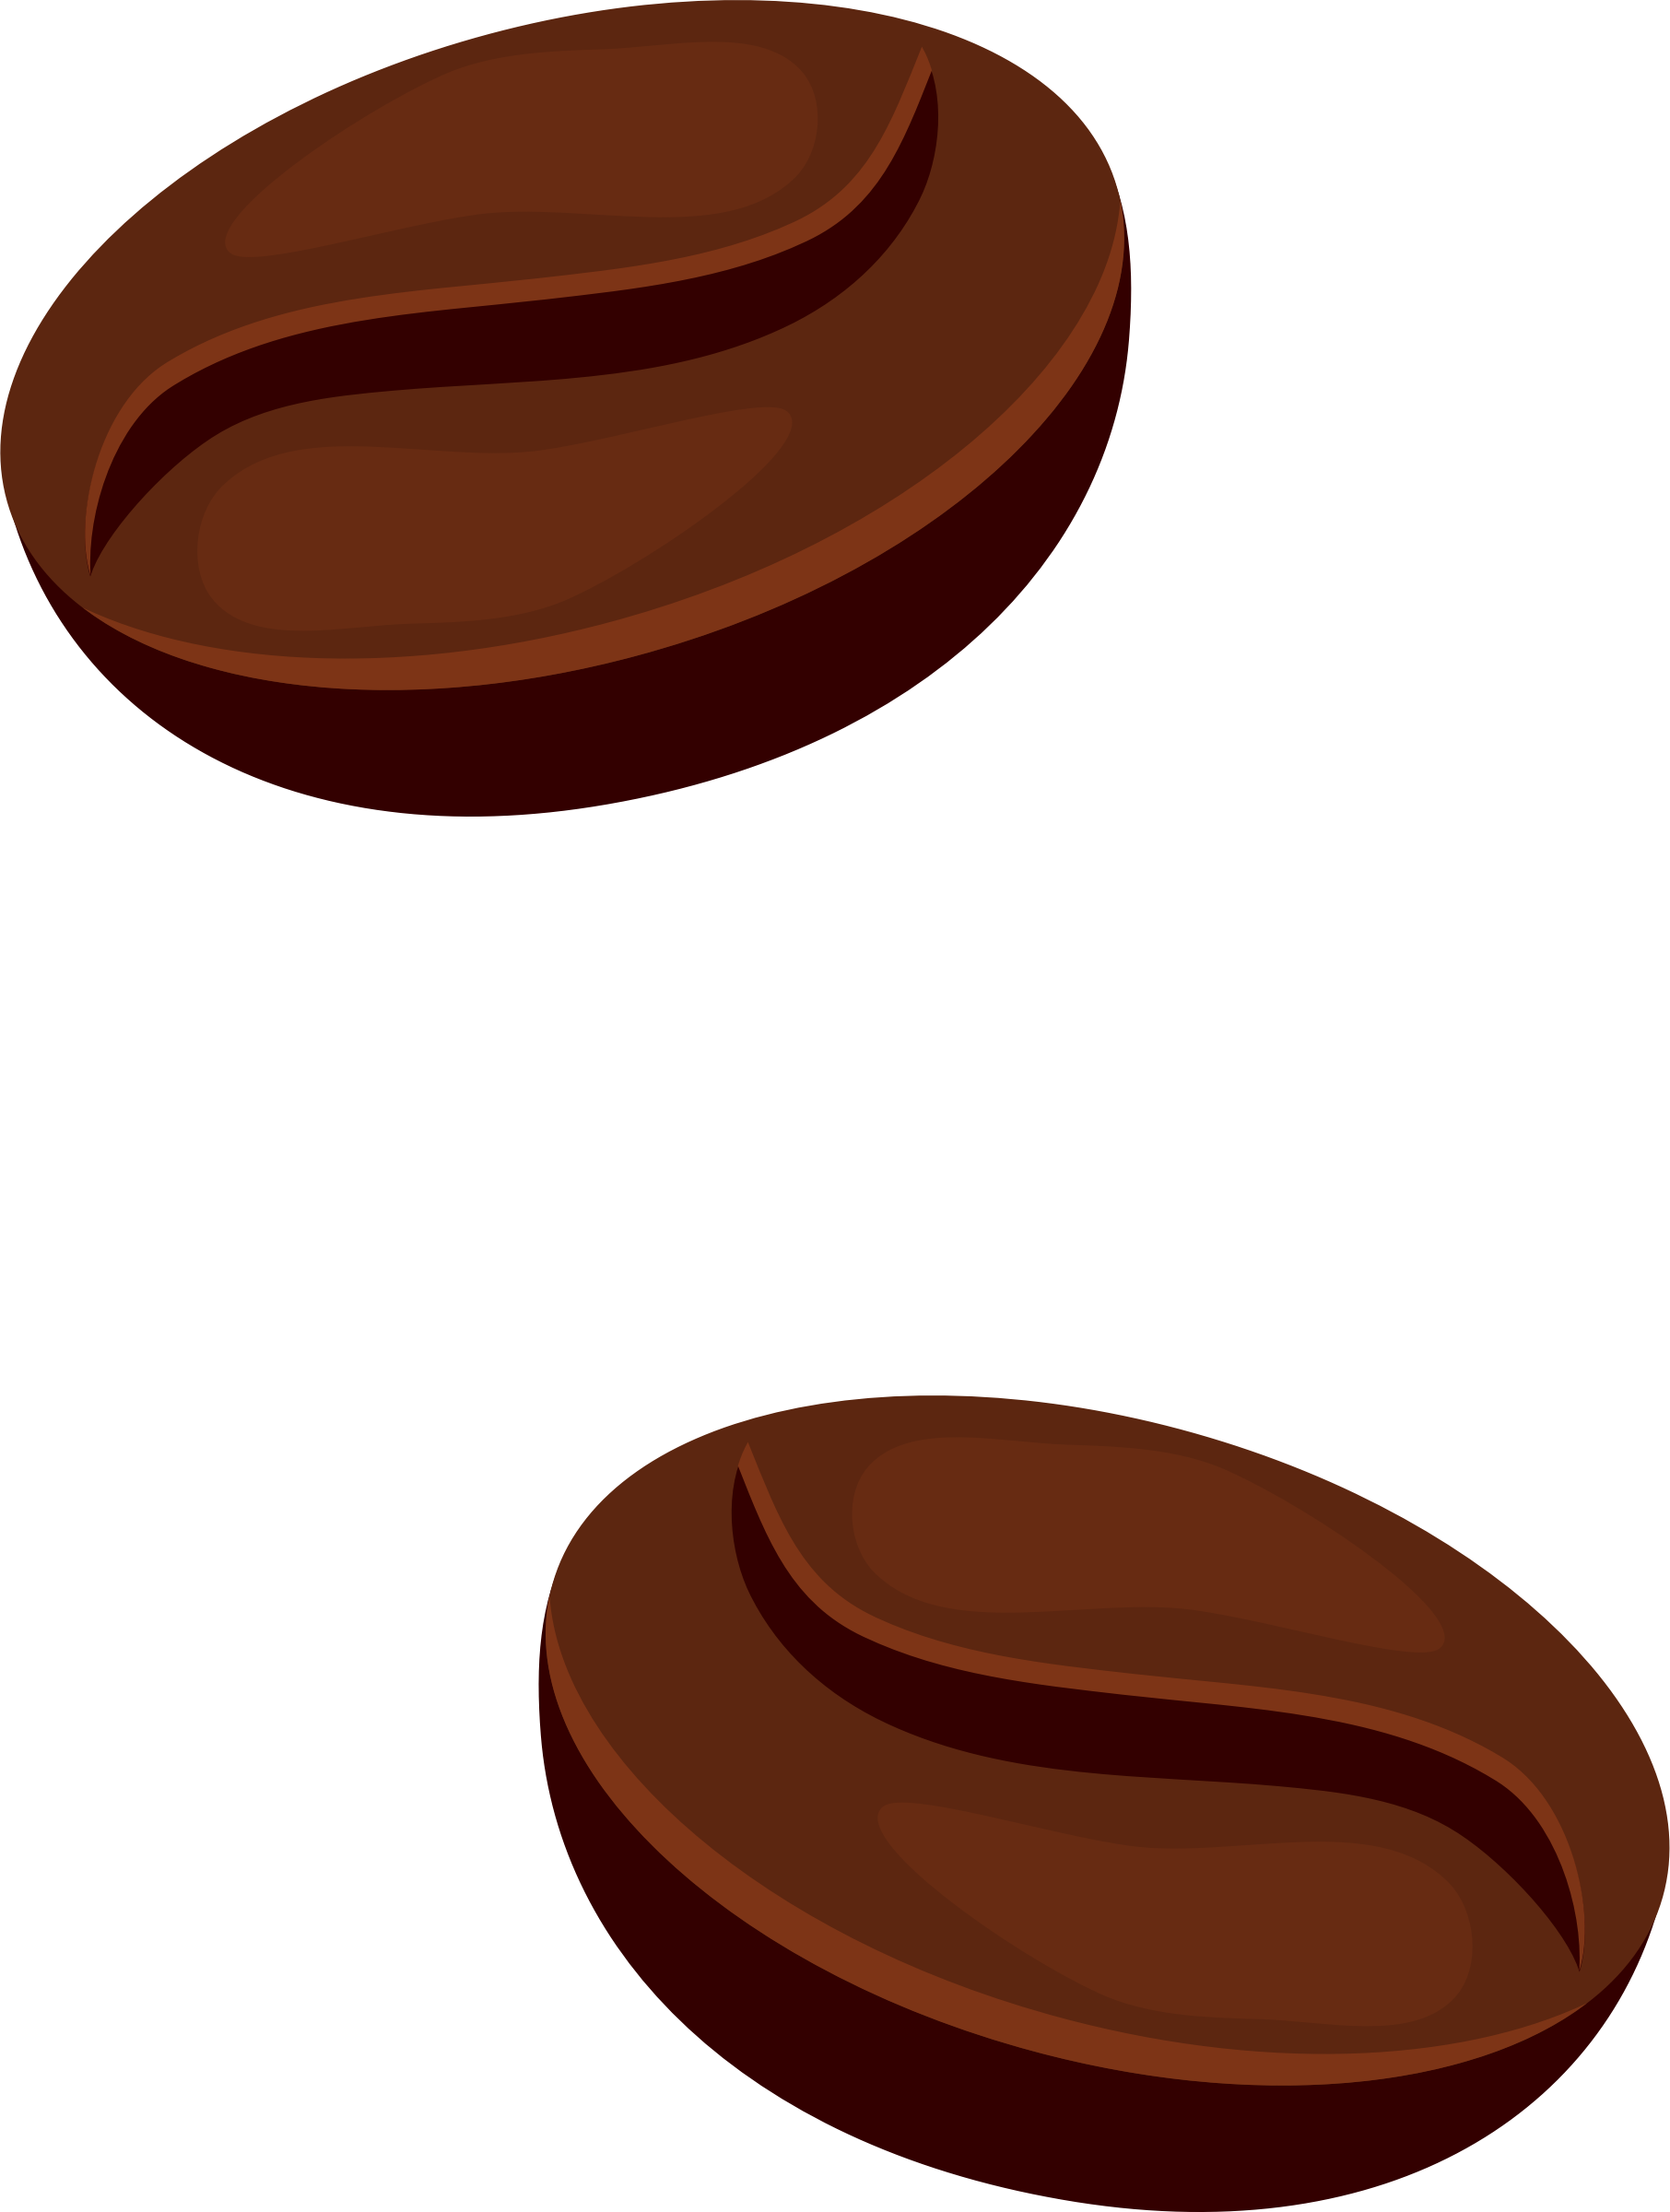 Coffee beans clipart no background.